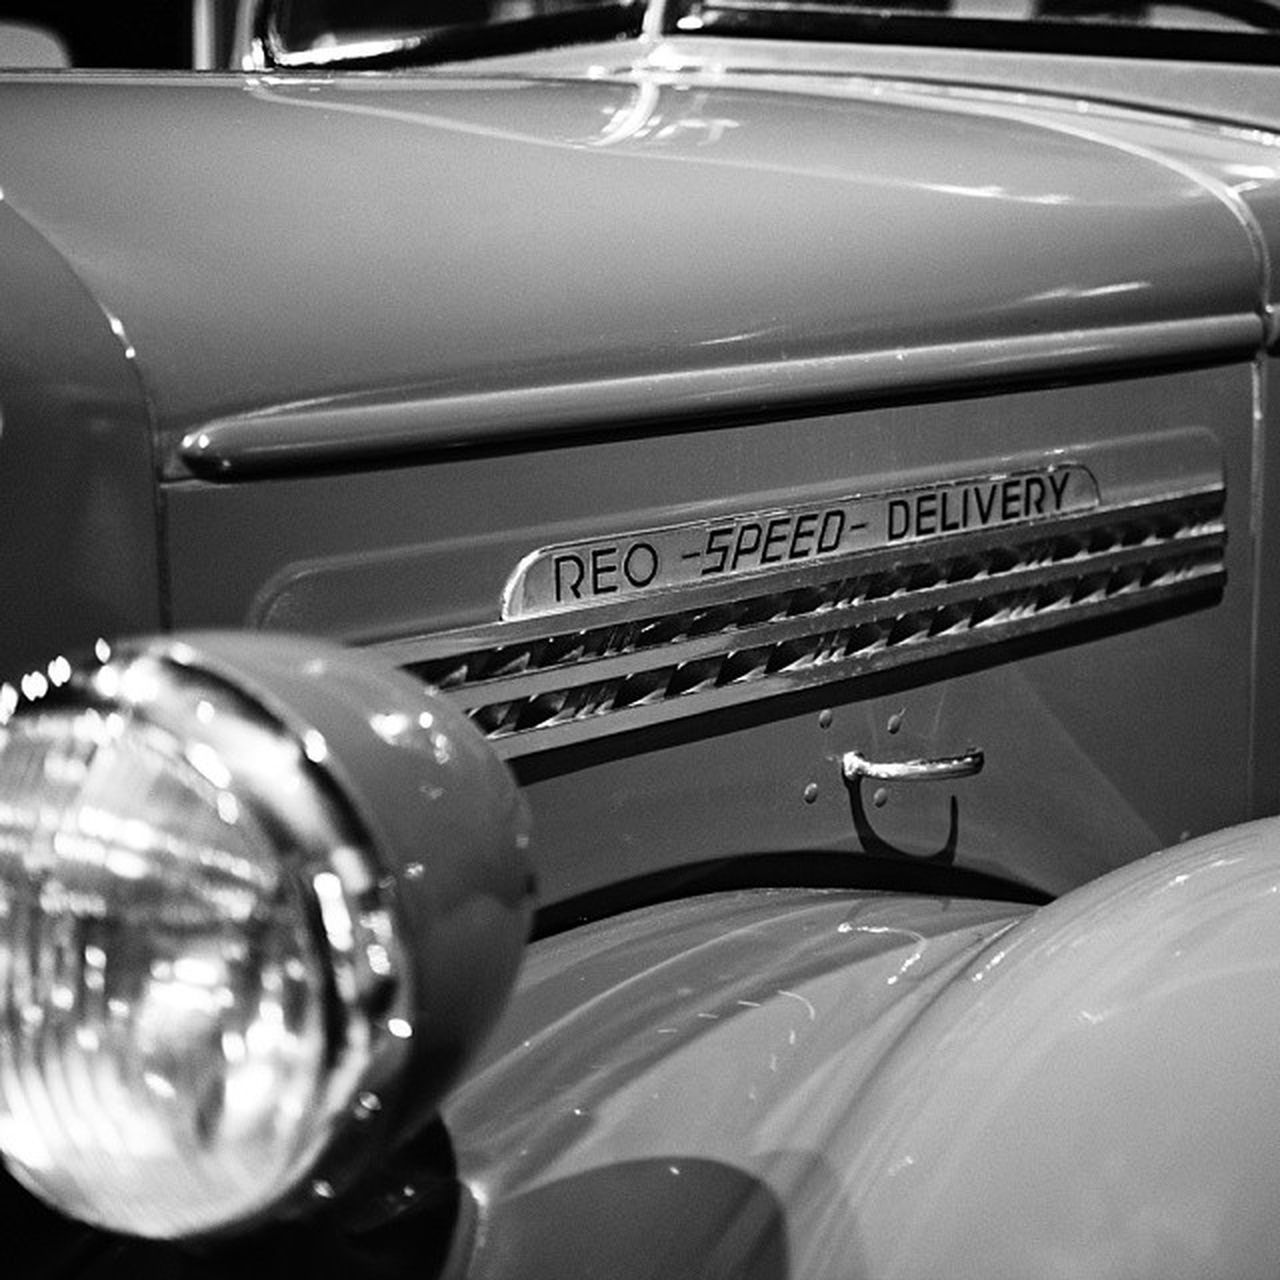 Speed Delivery Carporn Classiccars Reospeedwagon Automotive cars autos canon6d canonphotography trucks photoofday photographer photooftoday monochrome blackandwhite mono